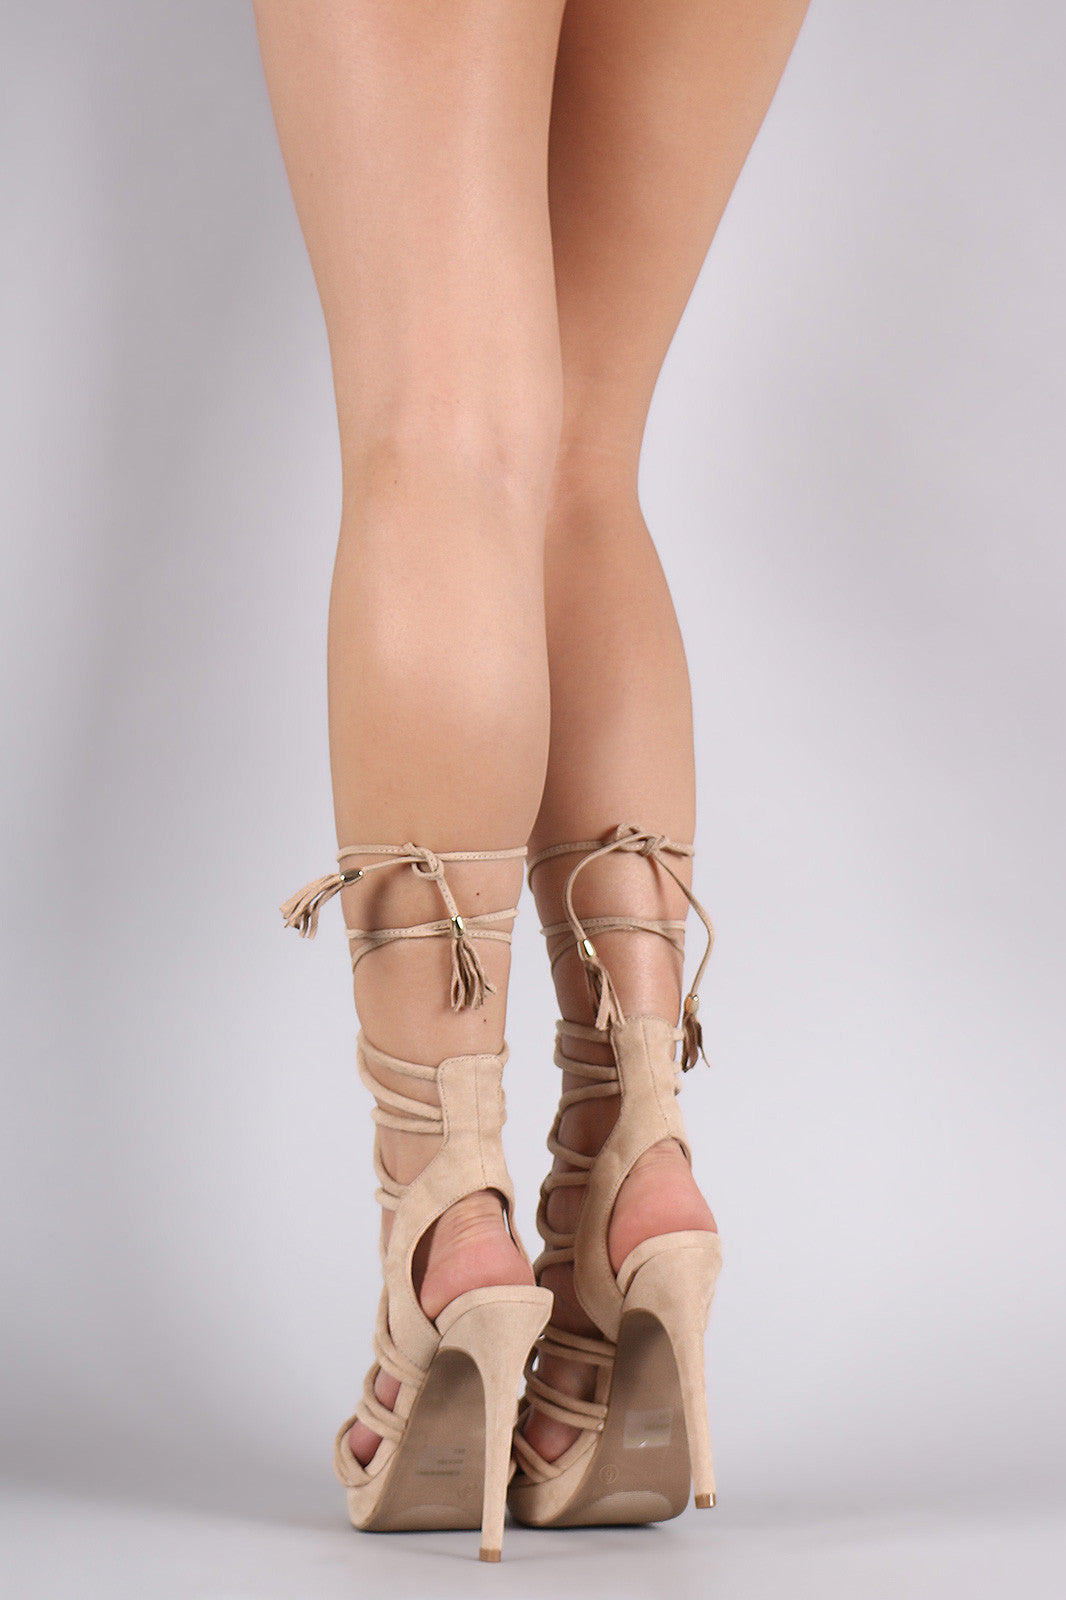 Wild Diva Lounge Suede Strappy Loop Lace-Up Platform Heel - Thick 'N' Curvy Shop - 9